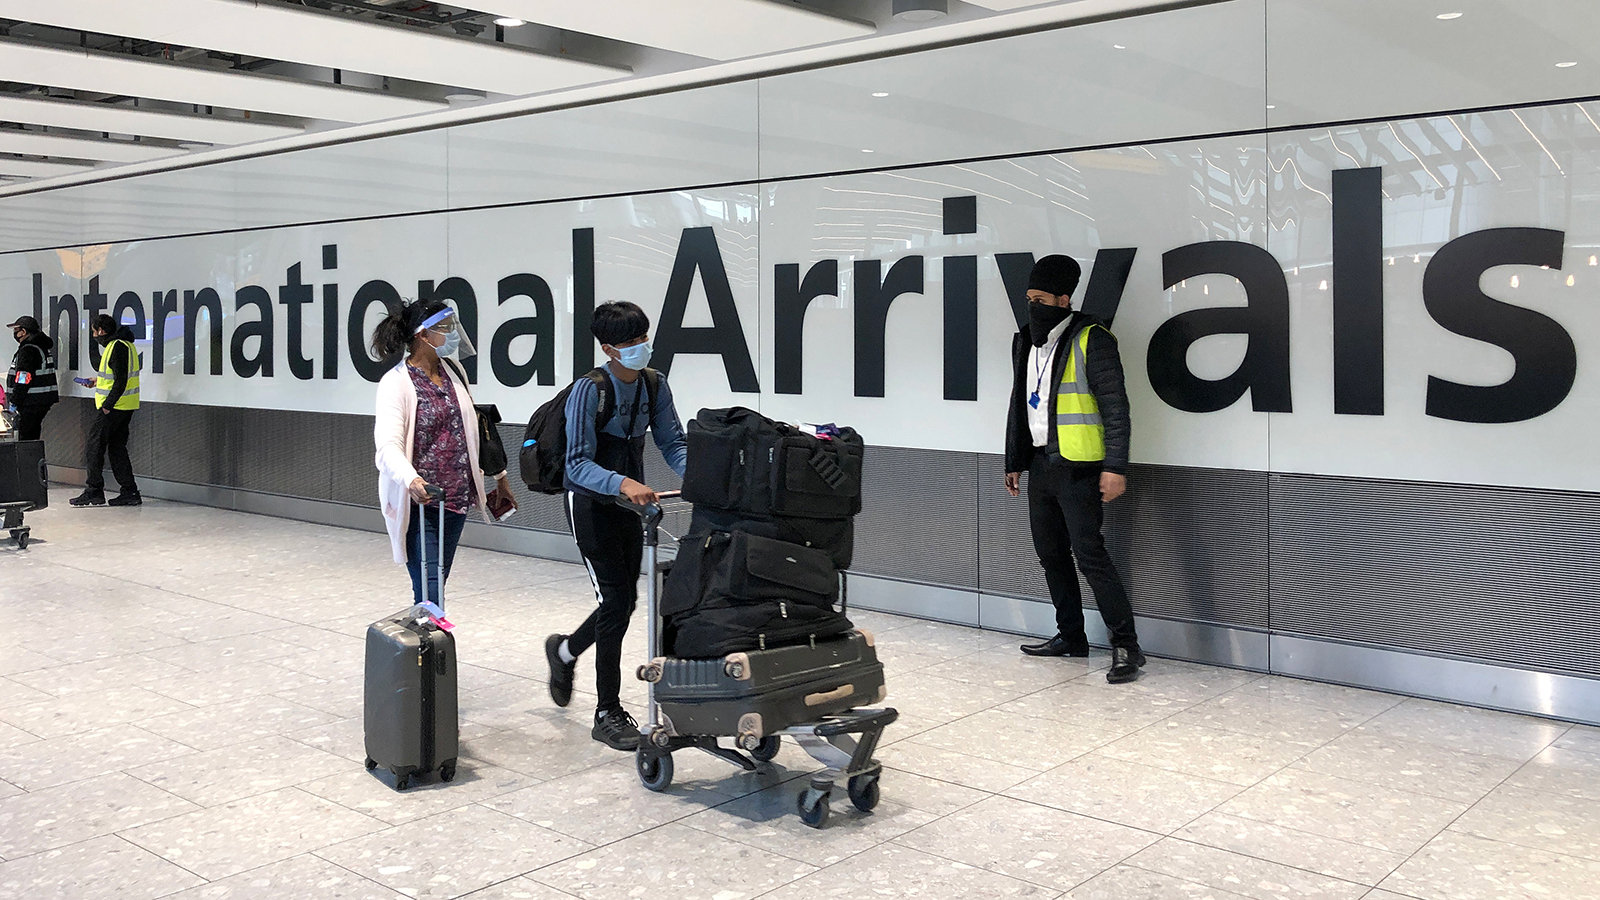 Passengers arriving from India are escorted through Heathrow airport on April 23, in London.